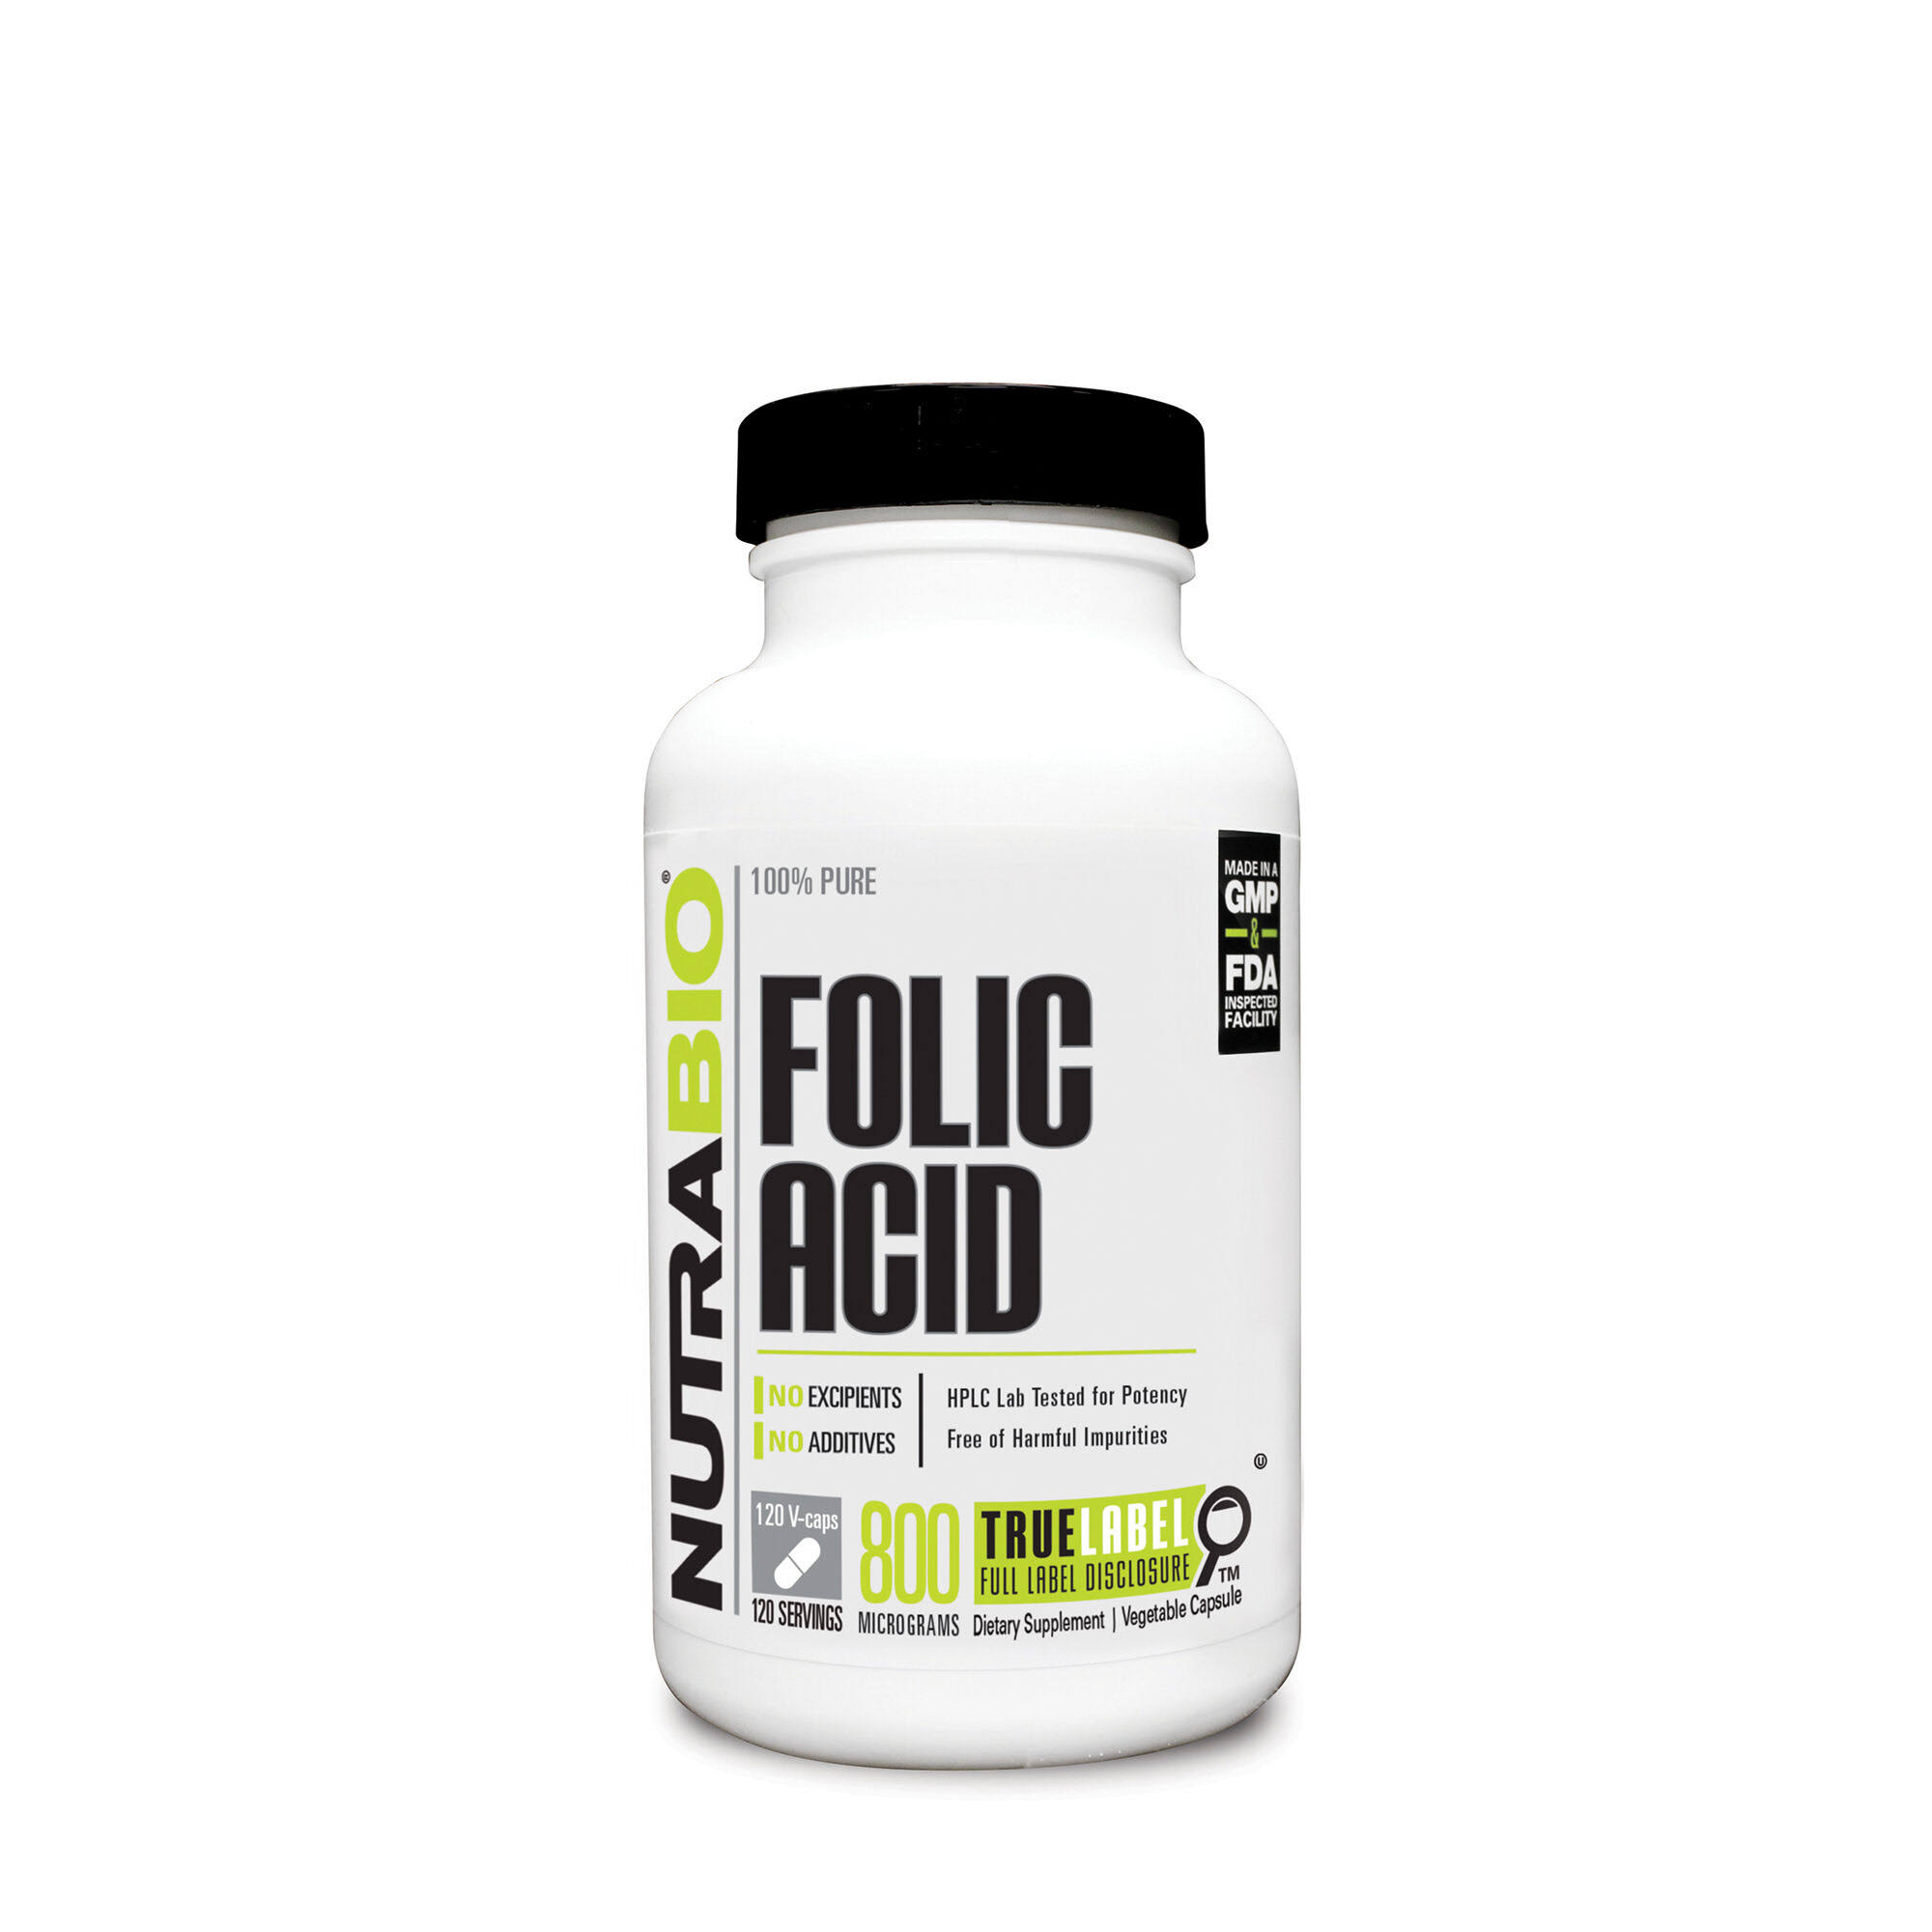 NutraBio Folic Acid 800 mcg - 120 Vegetable Capsules